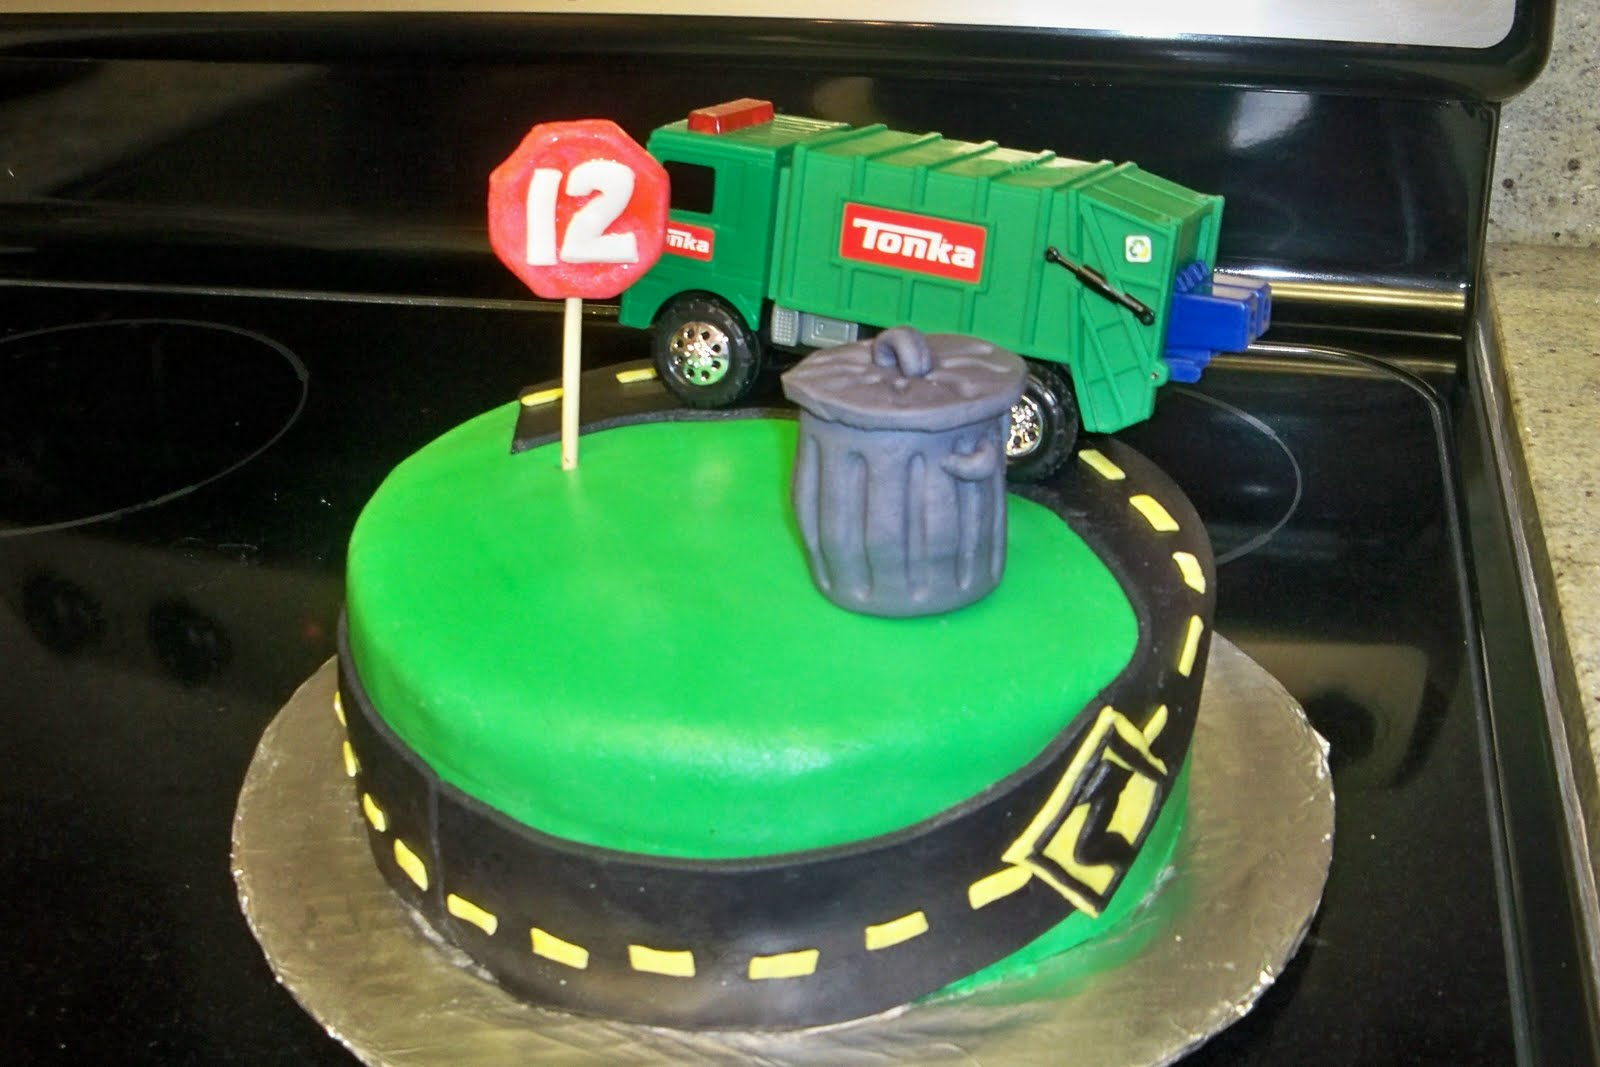 Garbage Truck Cake Road Cars Etc Experimented Again With Homemade Marshmallow Fondant It Wasn T As Terrible Last Time But Was Still